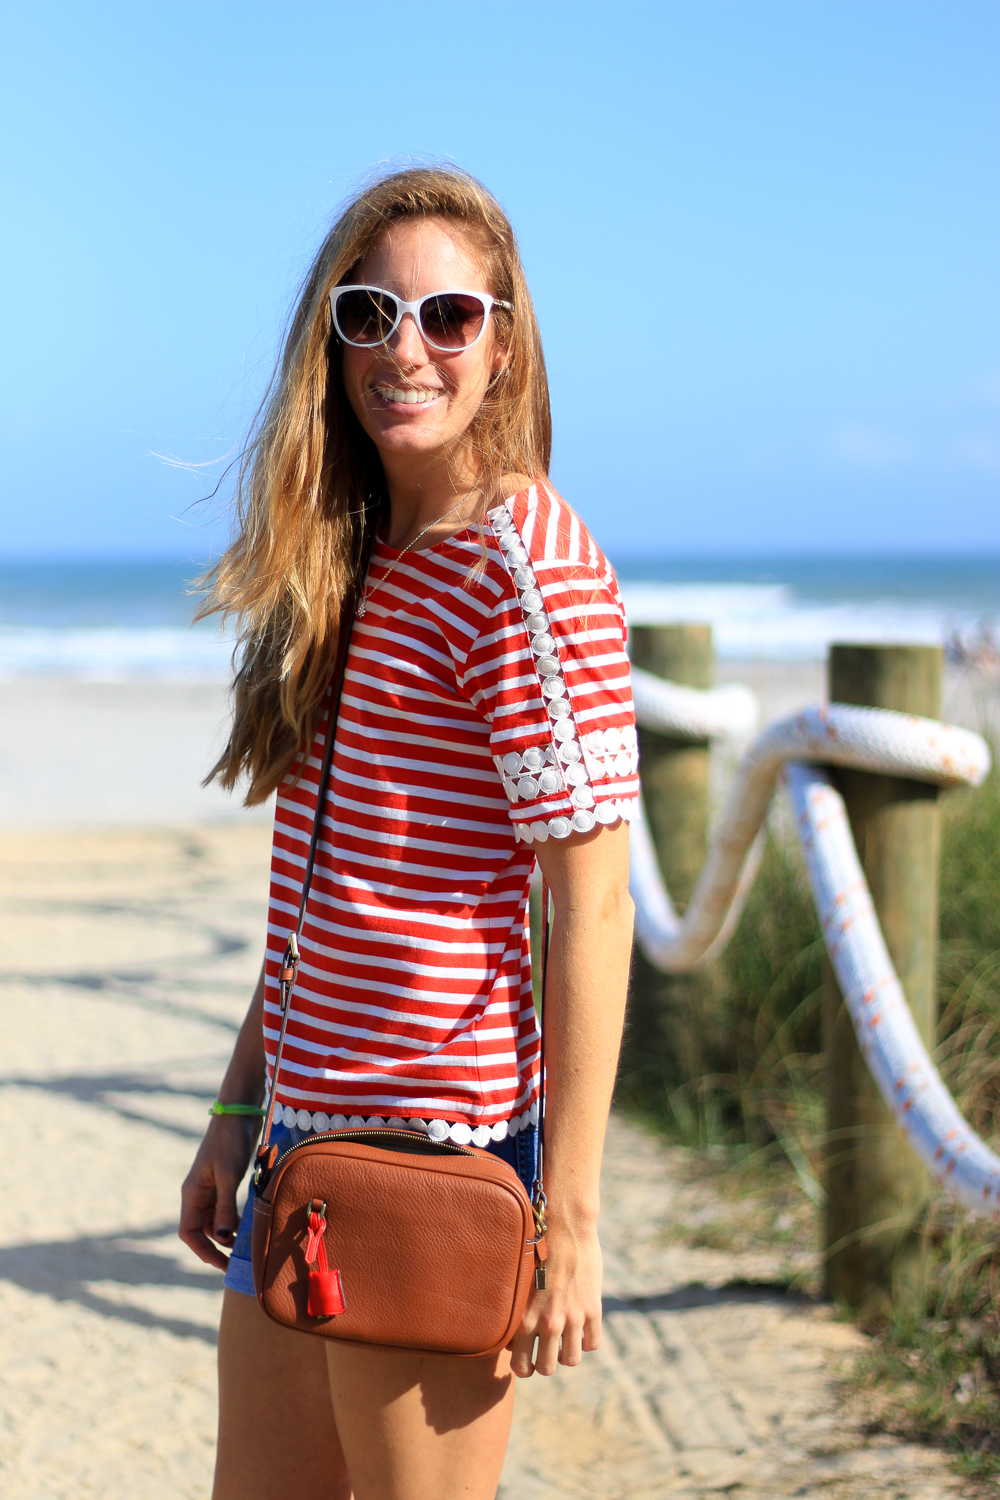 cocoa-beach-and-jcrew-bag-27